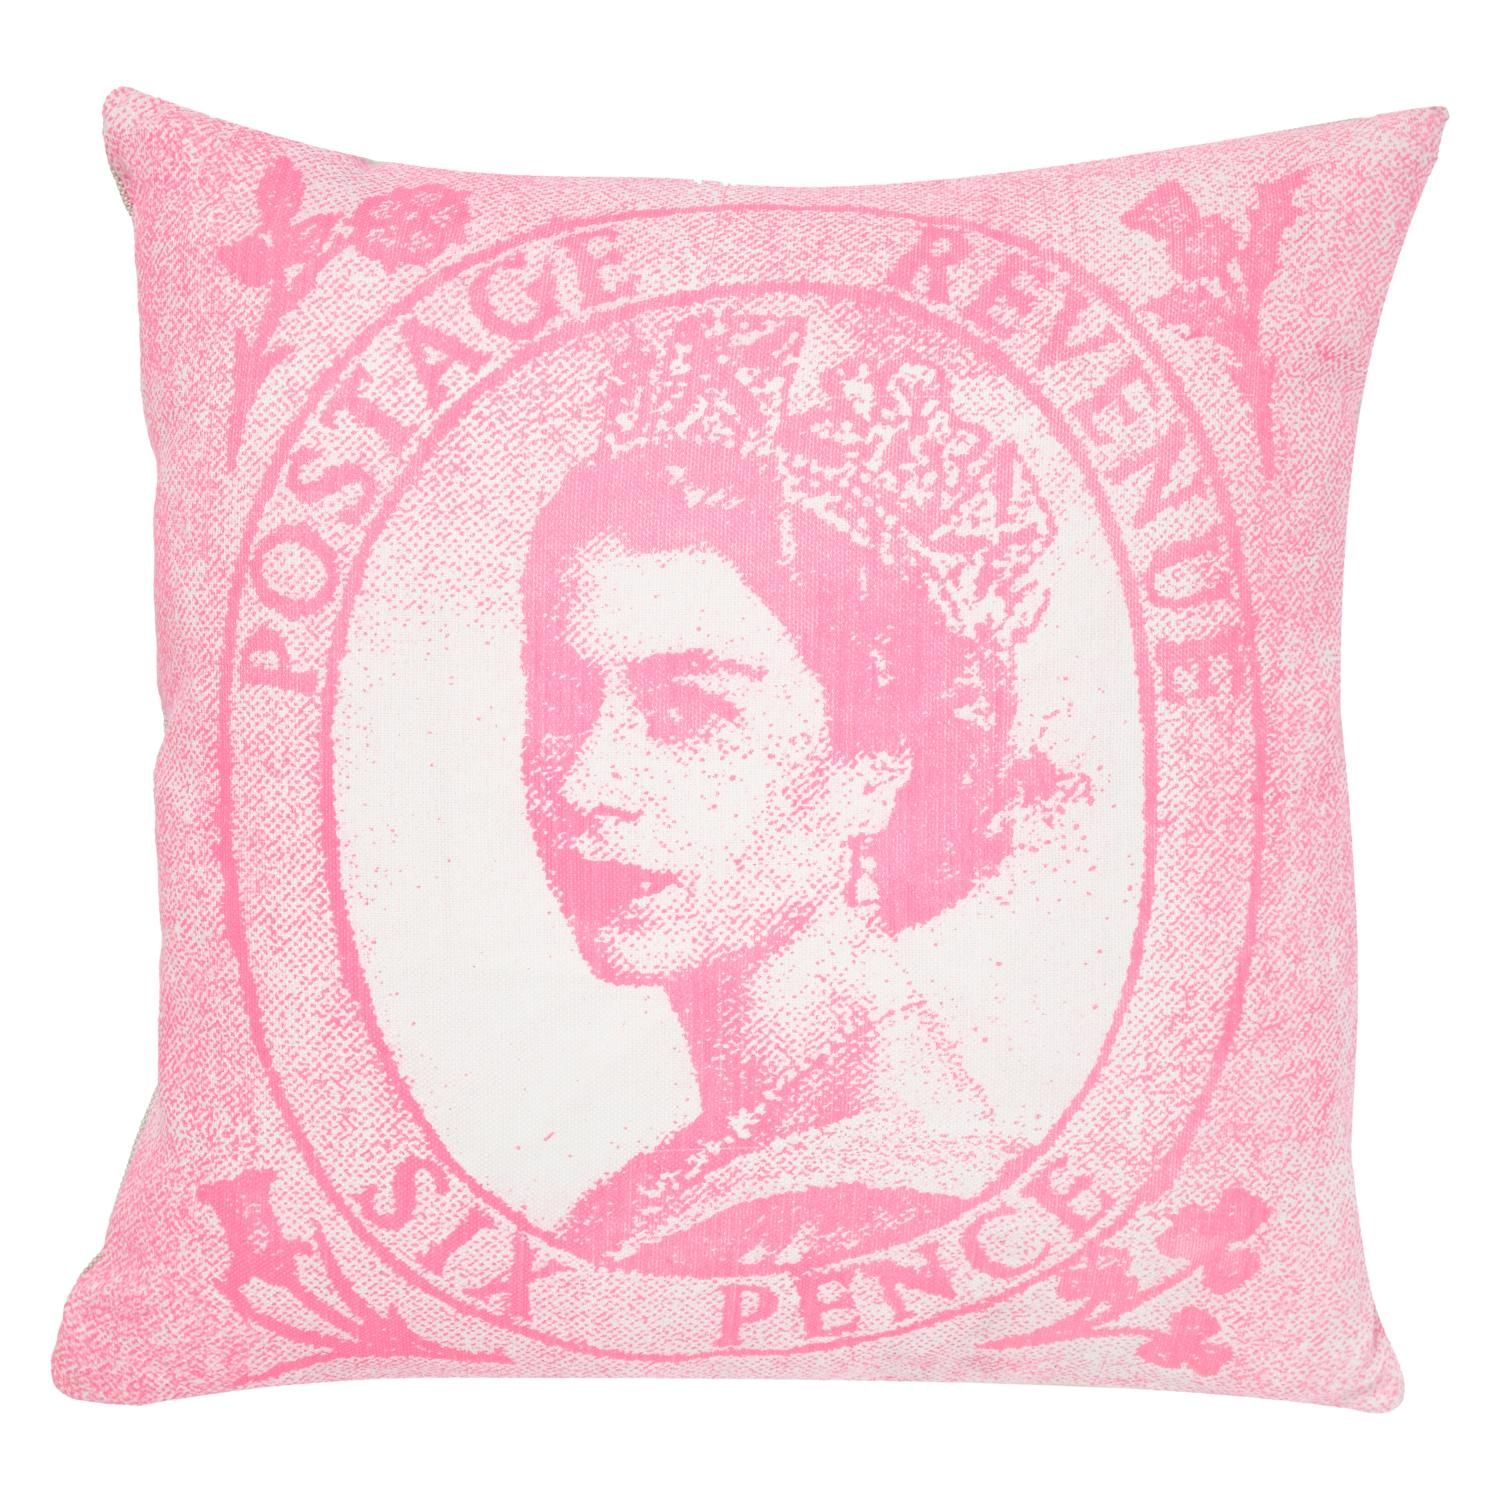 Queen Stamp Cushion   National Gallery Shop   Charity ...